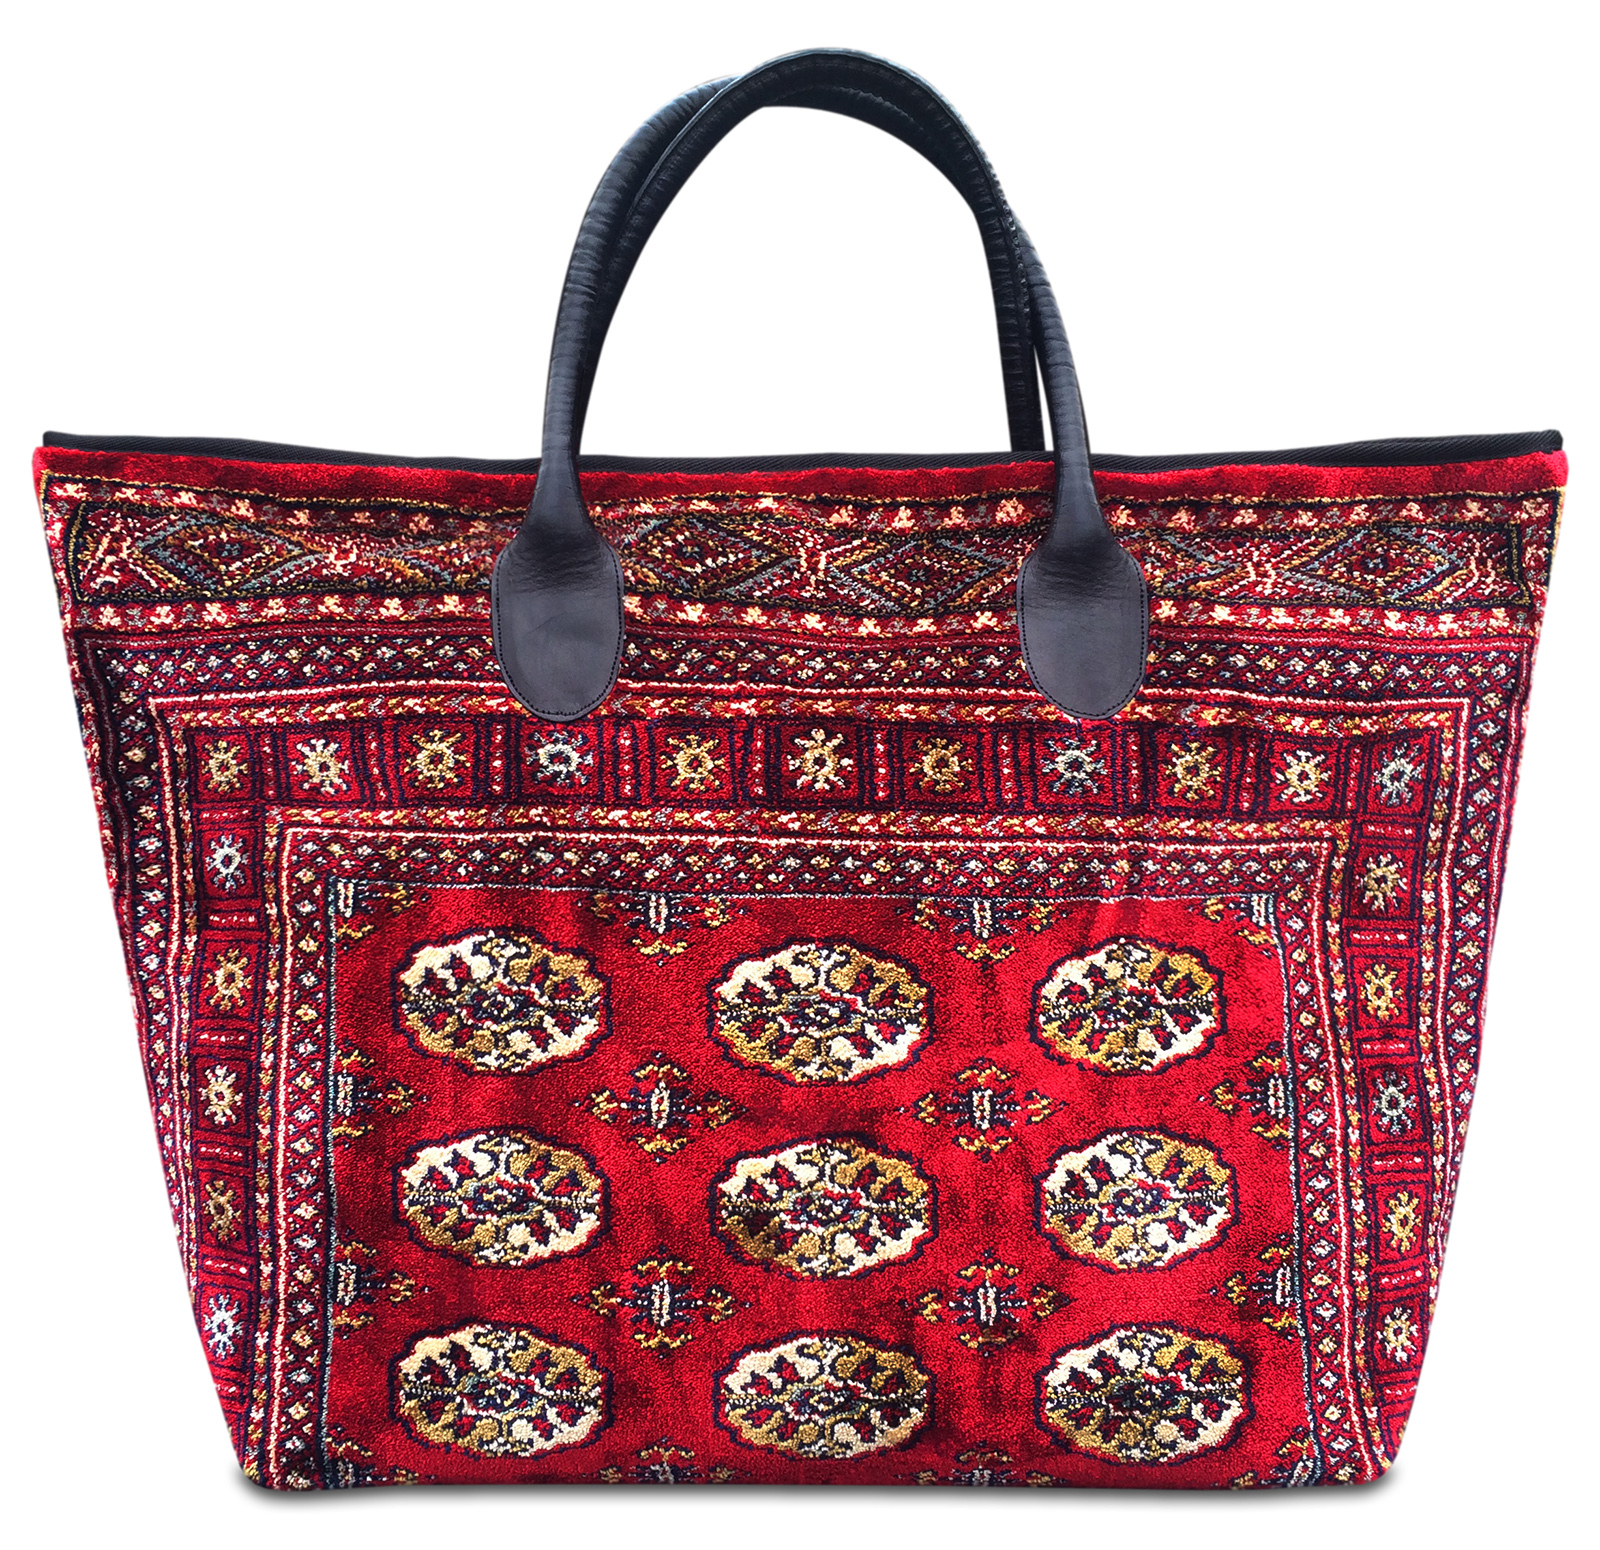 Image of VOYAGER ELITE Bukhara Red Victorian Carpet Bag.